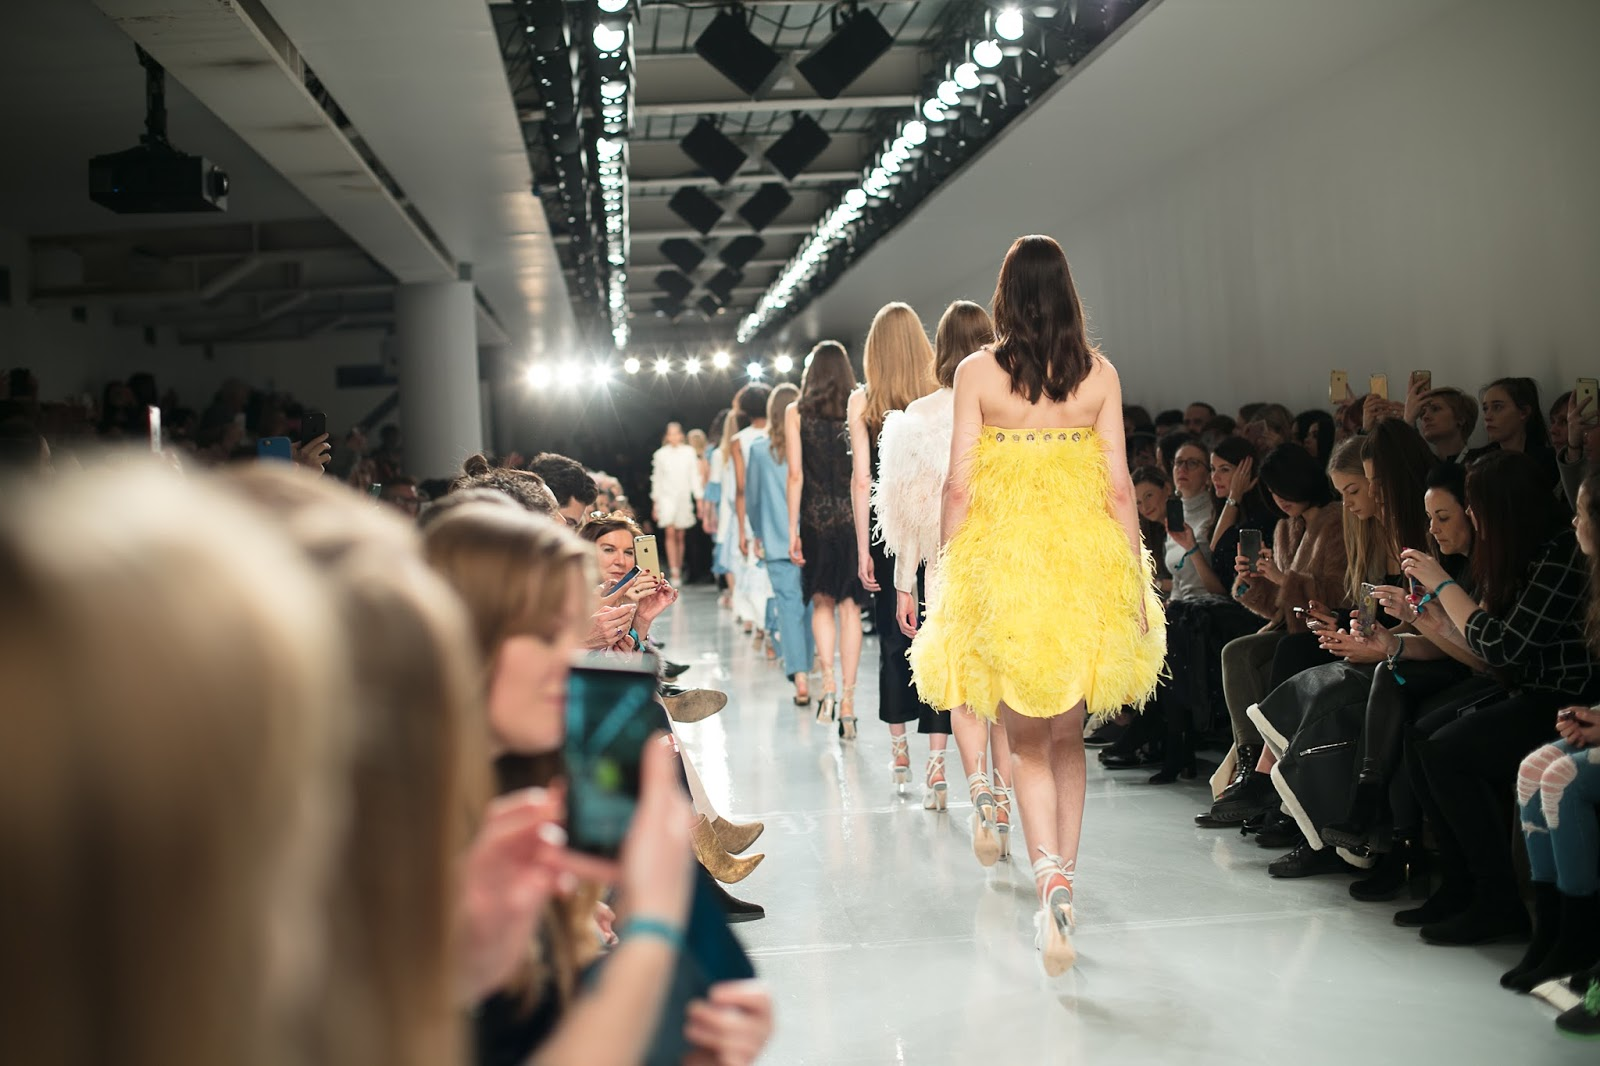 The Ultimate Fashion Experience Is Back cc. @LFW_Festival